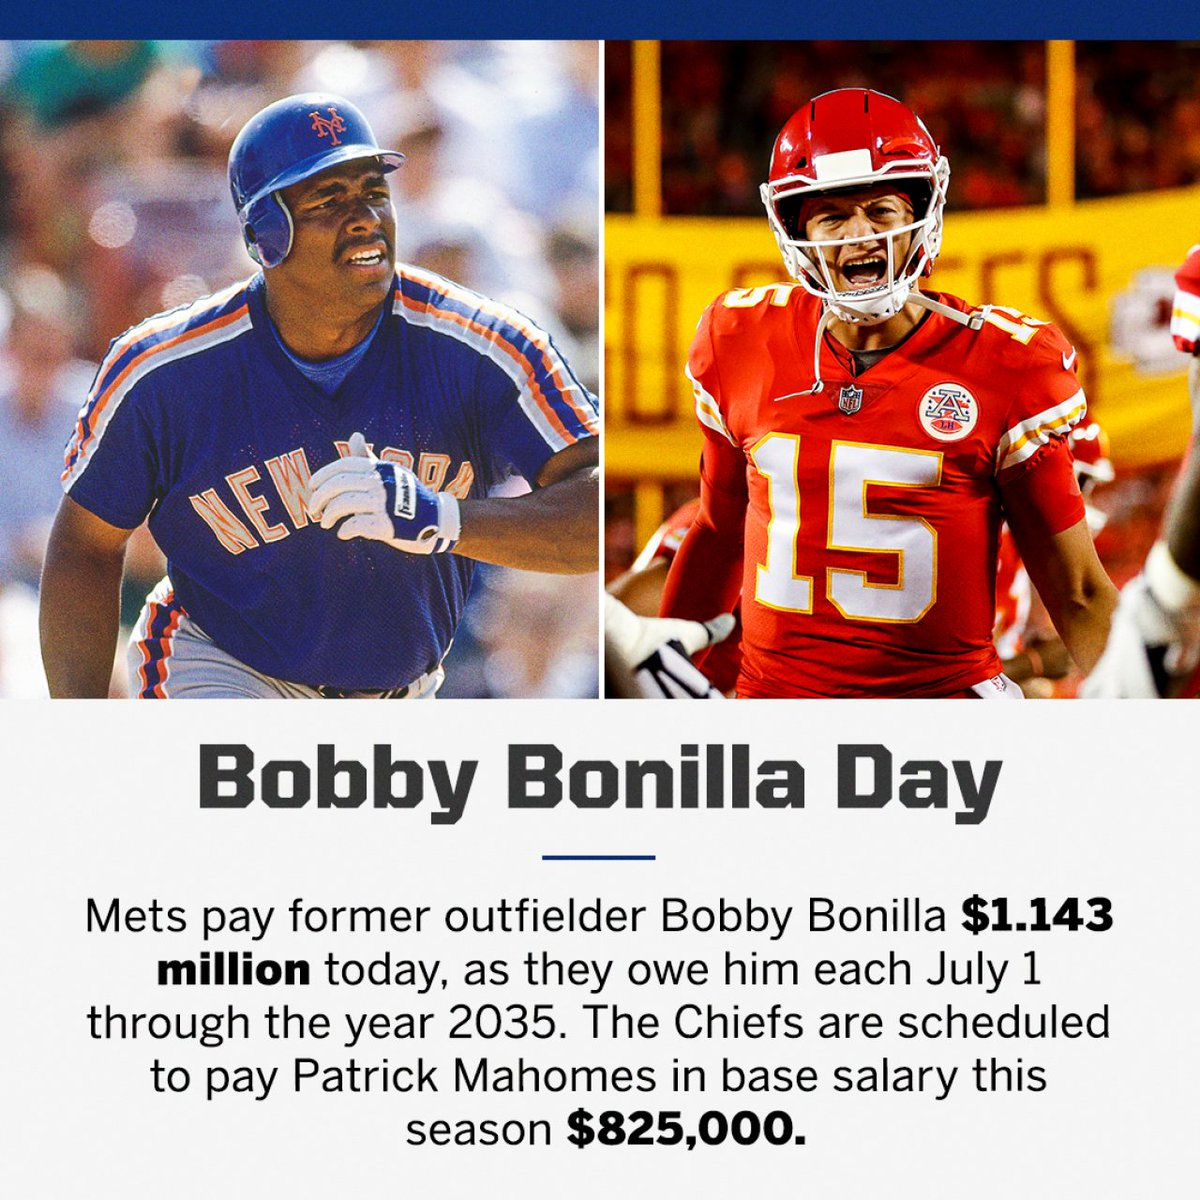 The difference - for the time being - between former Mets' outfielder Bobby Bonilla and current Chiefs' quarterback Patrick Mahomes. https://t.co/89NNoYJ3vz